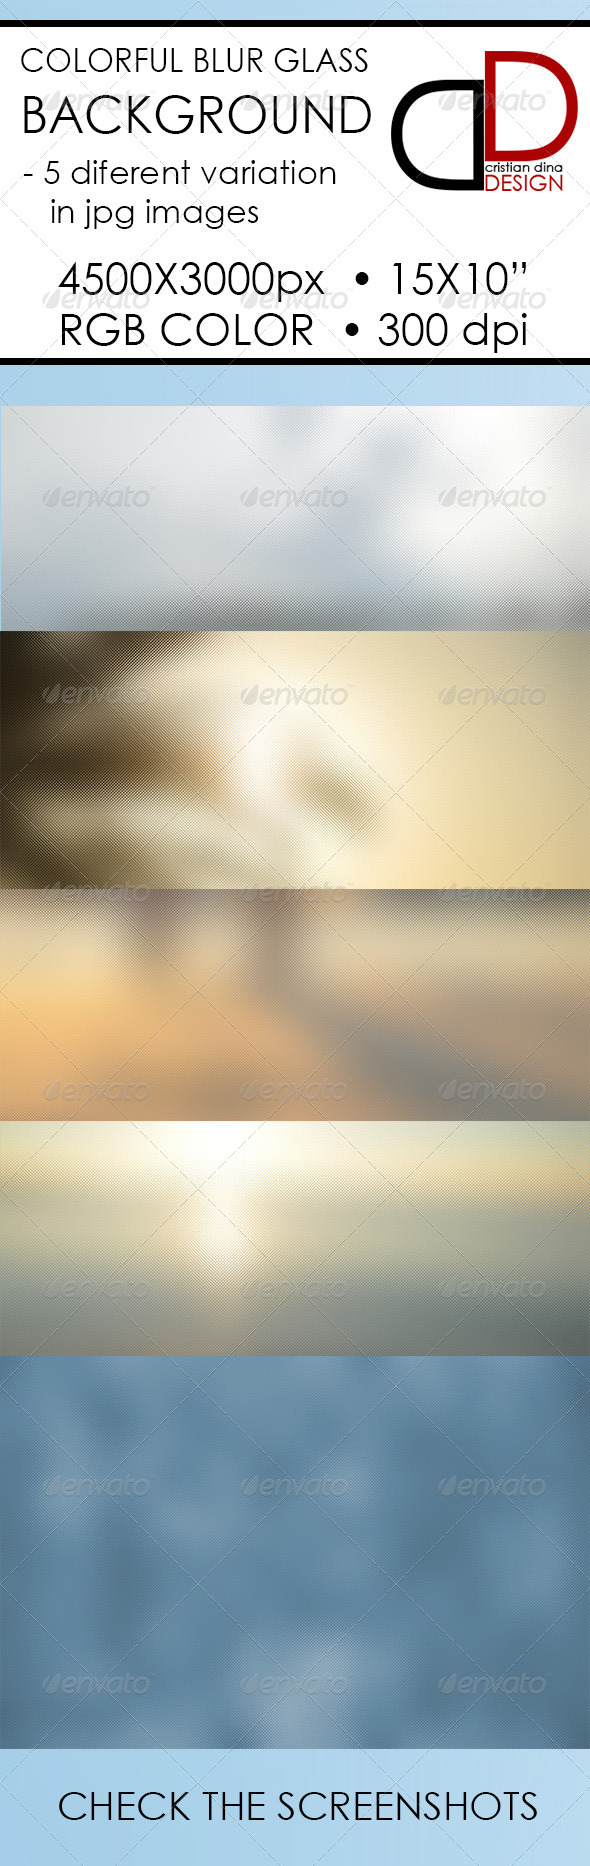 GraphicRiver Colorful Blur Glass Background 6335529